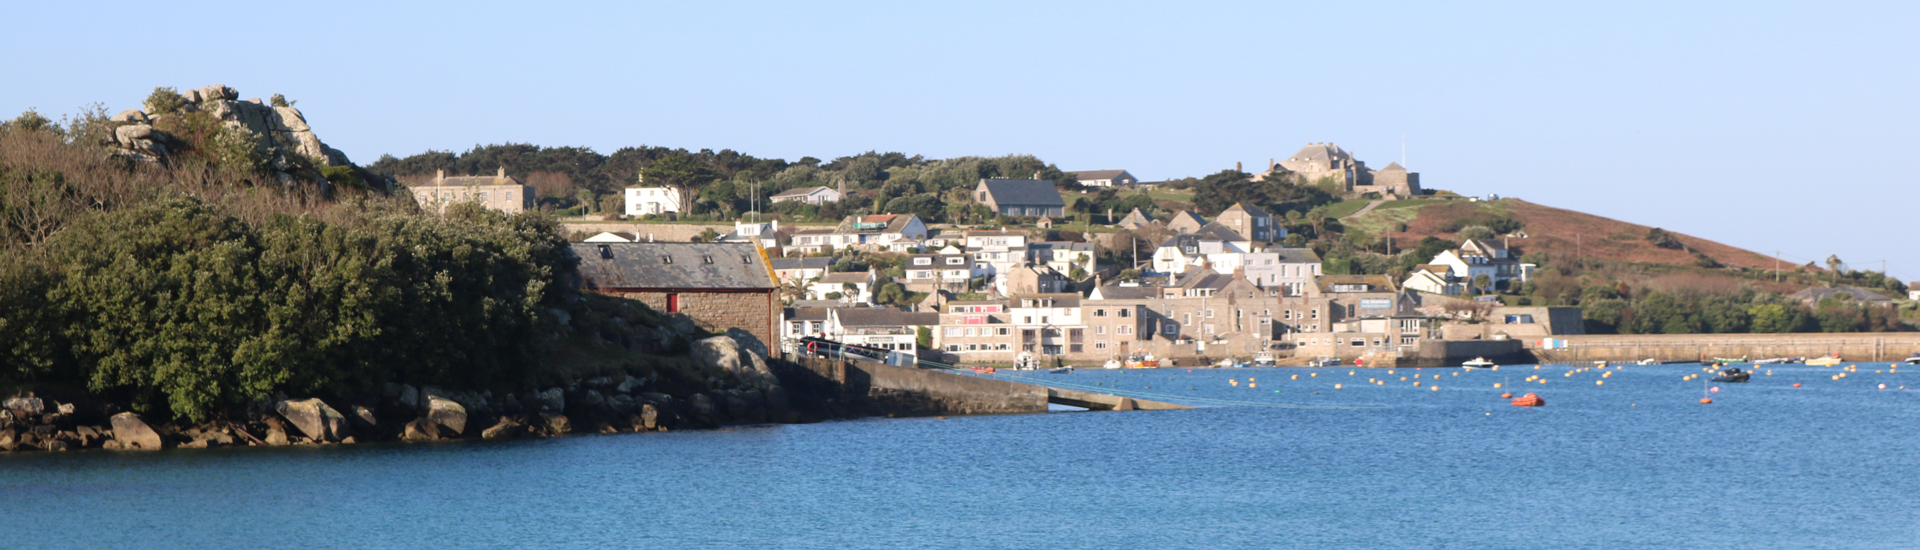 Holiday Apartment on the Isles of Scilly